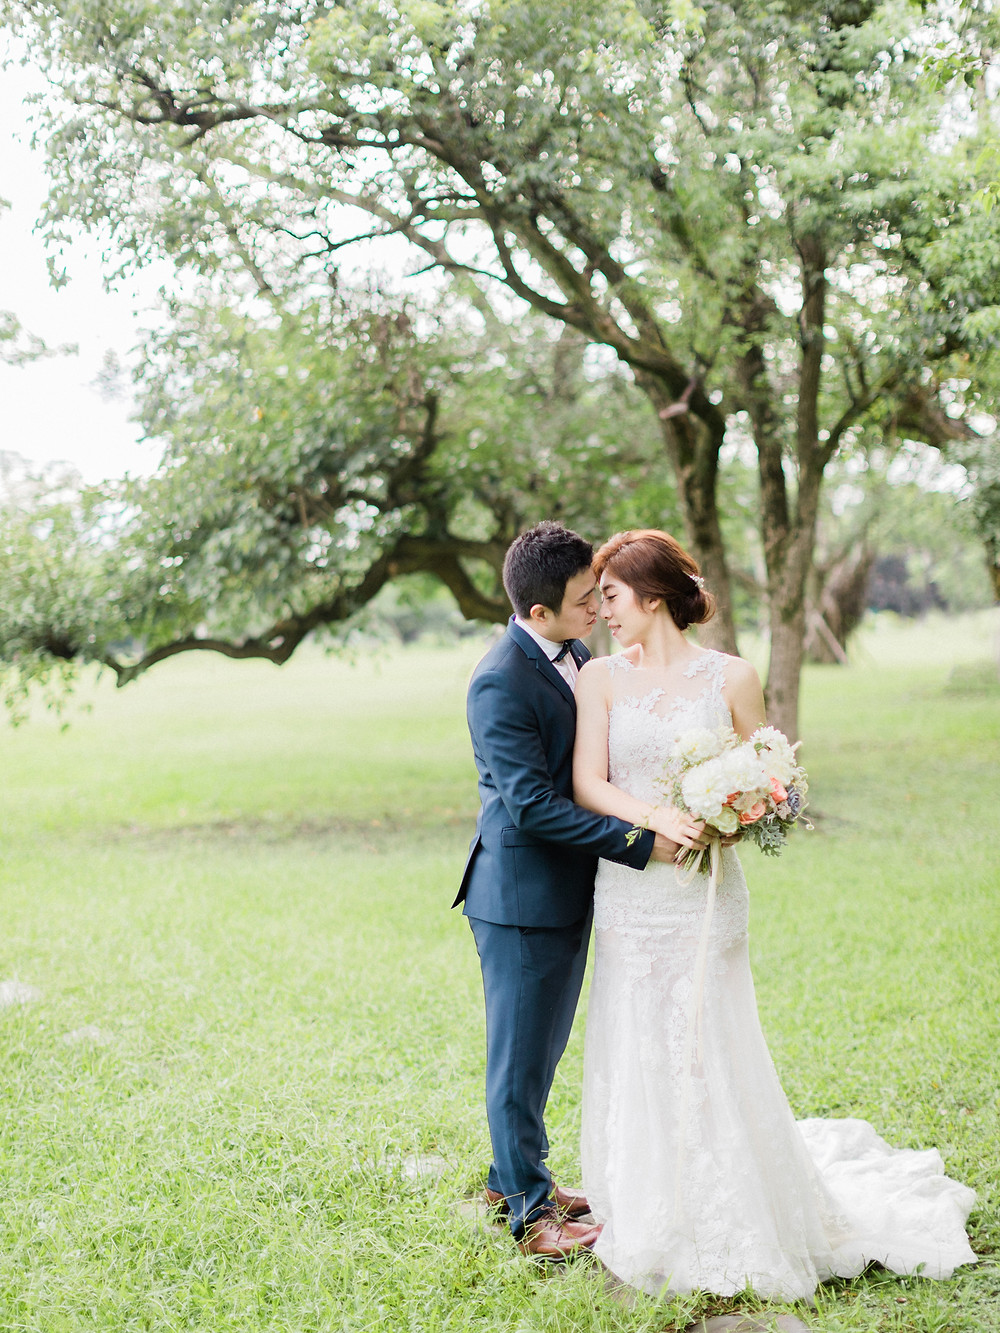 Melody & Cato Engagement(Pre-Wedding) in Taiwan Arther Chen Photography 美式婚紗